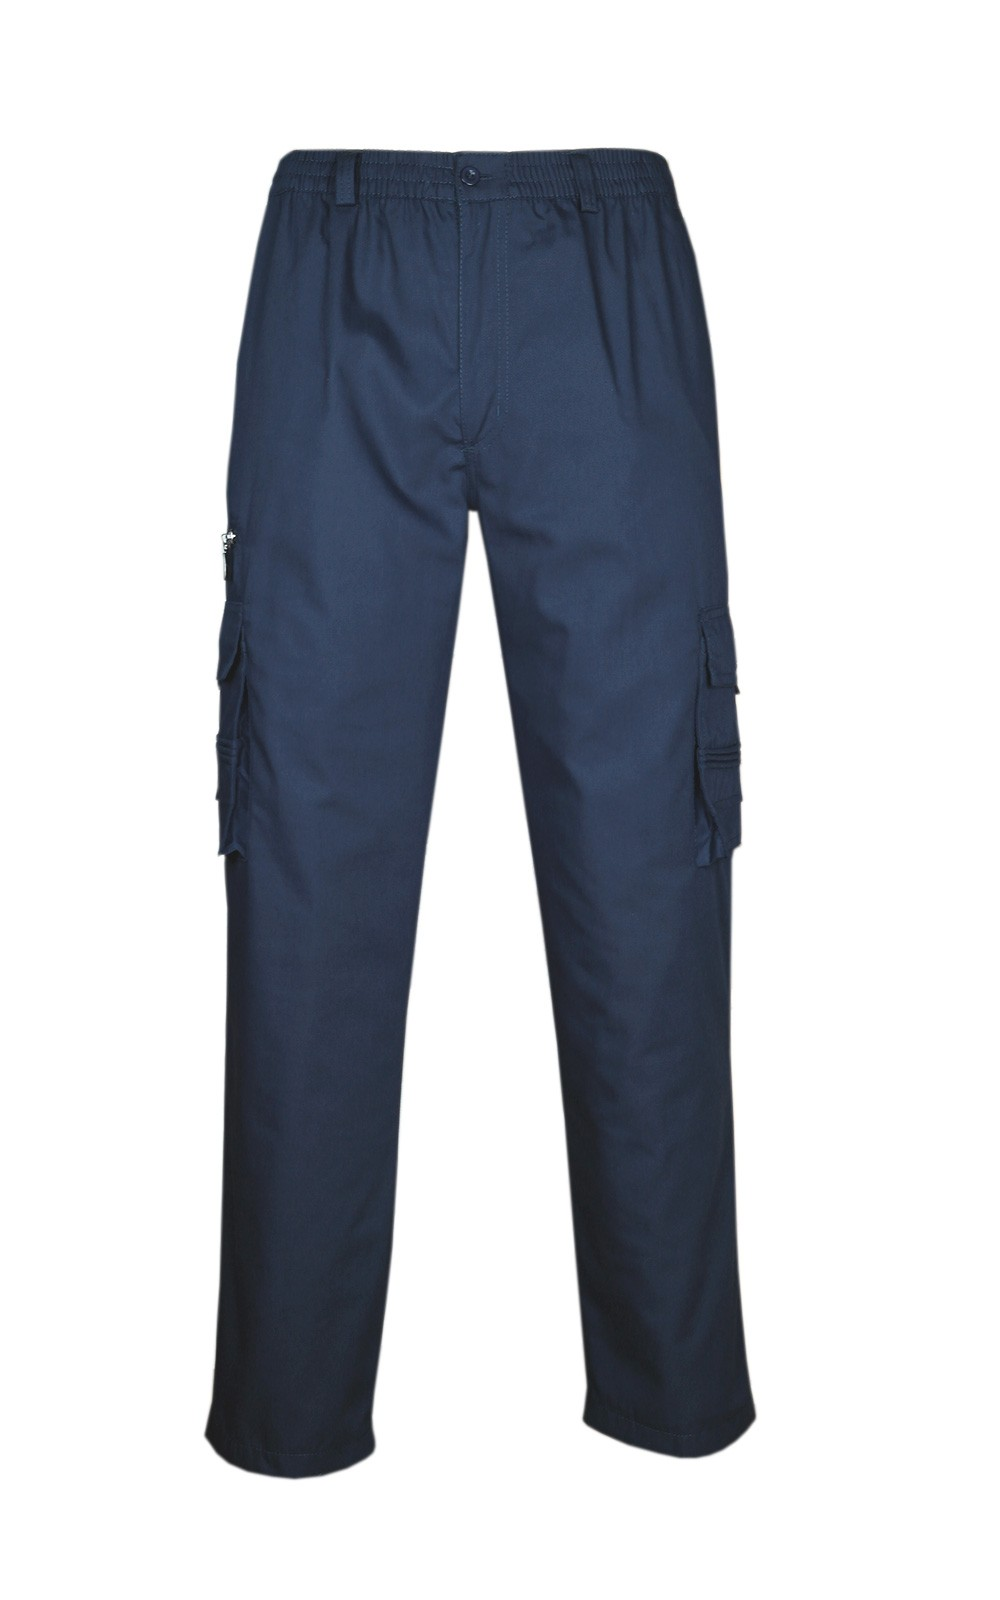 Gefütterte Fleece Cargohose, Winterhose, Warme Thermohose navy